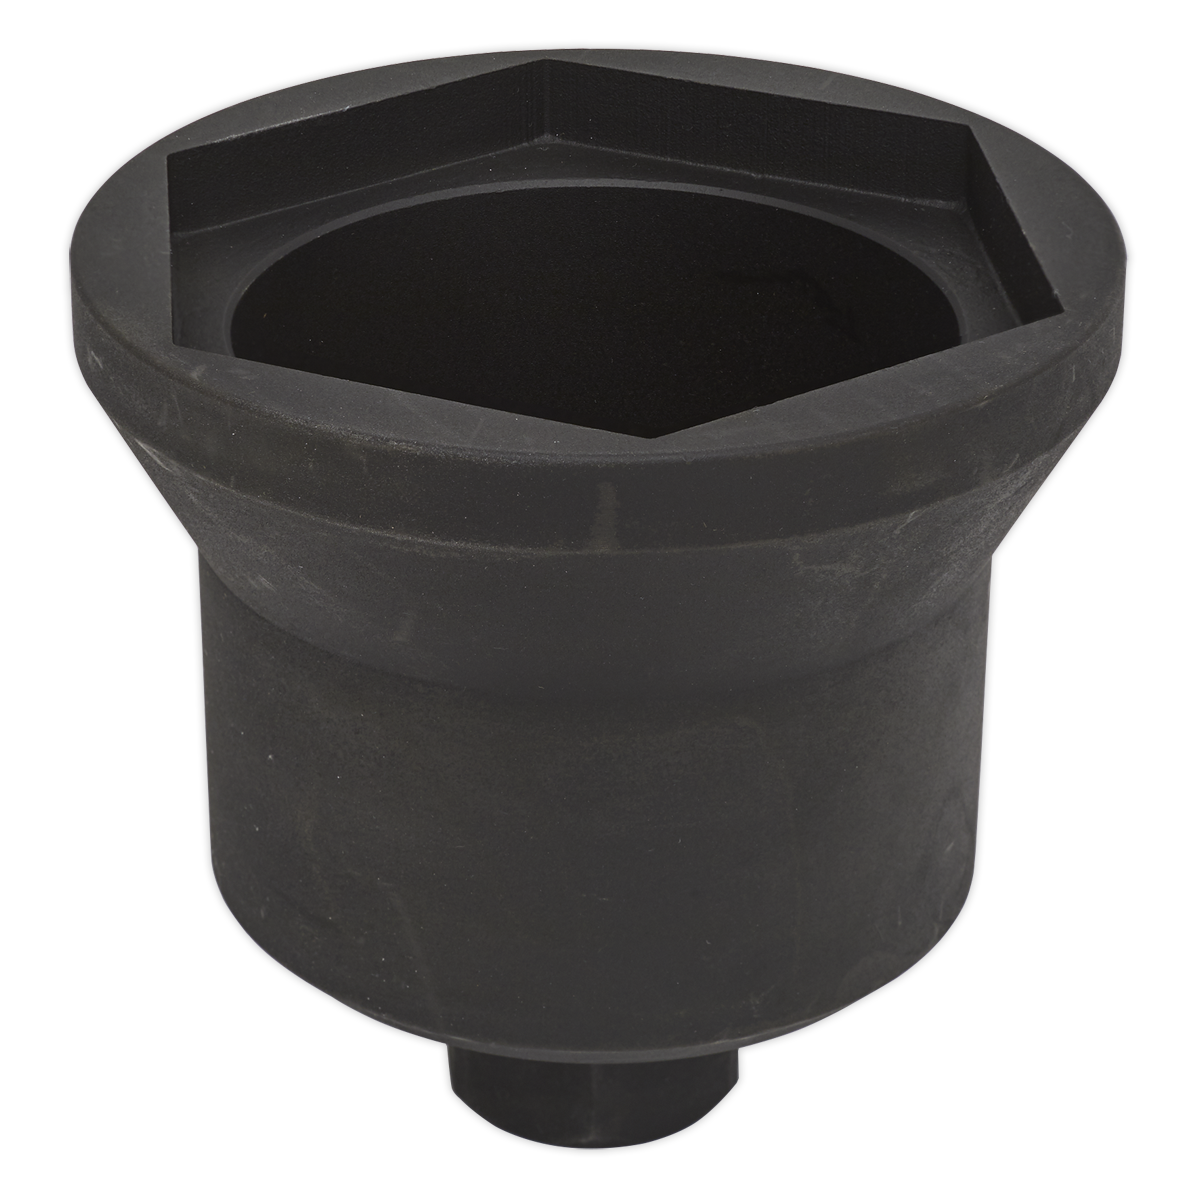 Axle Nut Socket - Iveco 98mm 3 4 Sq Drive Sealey CV016 by Sealey